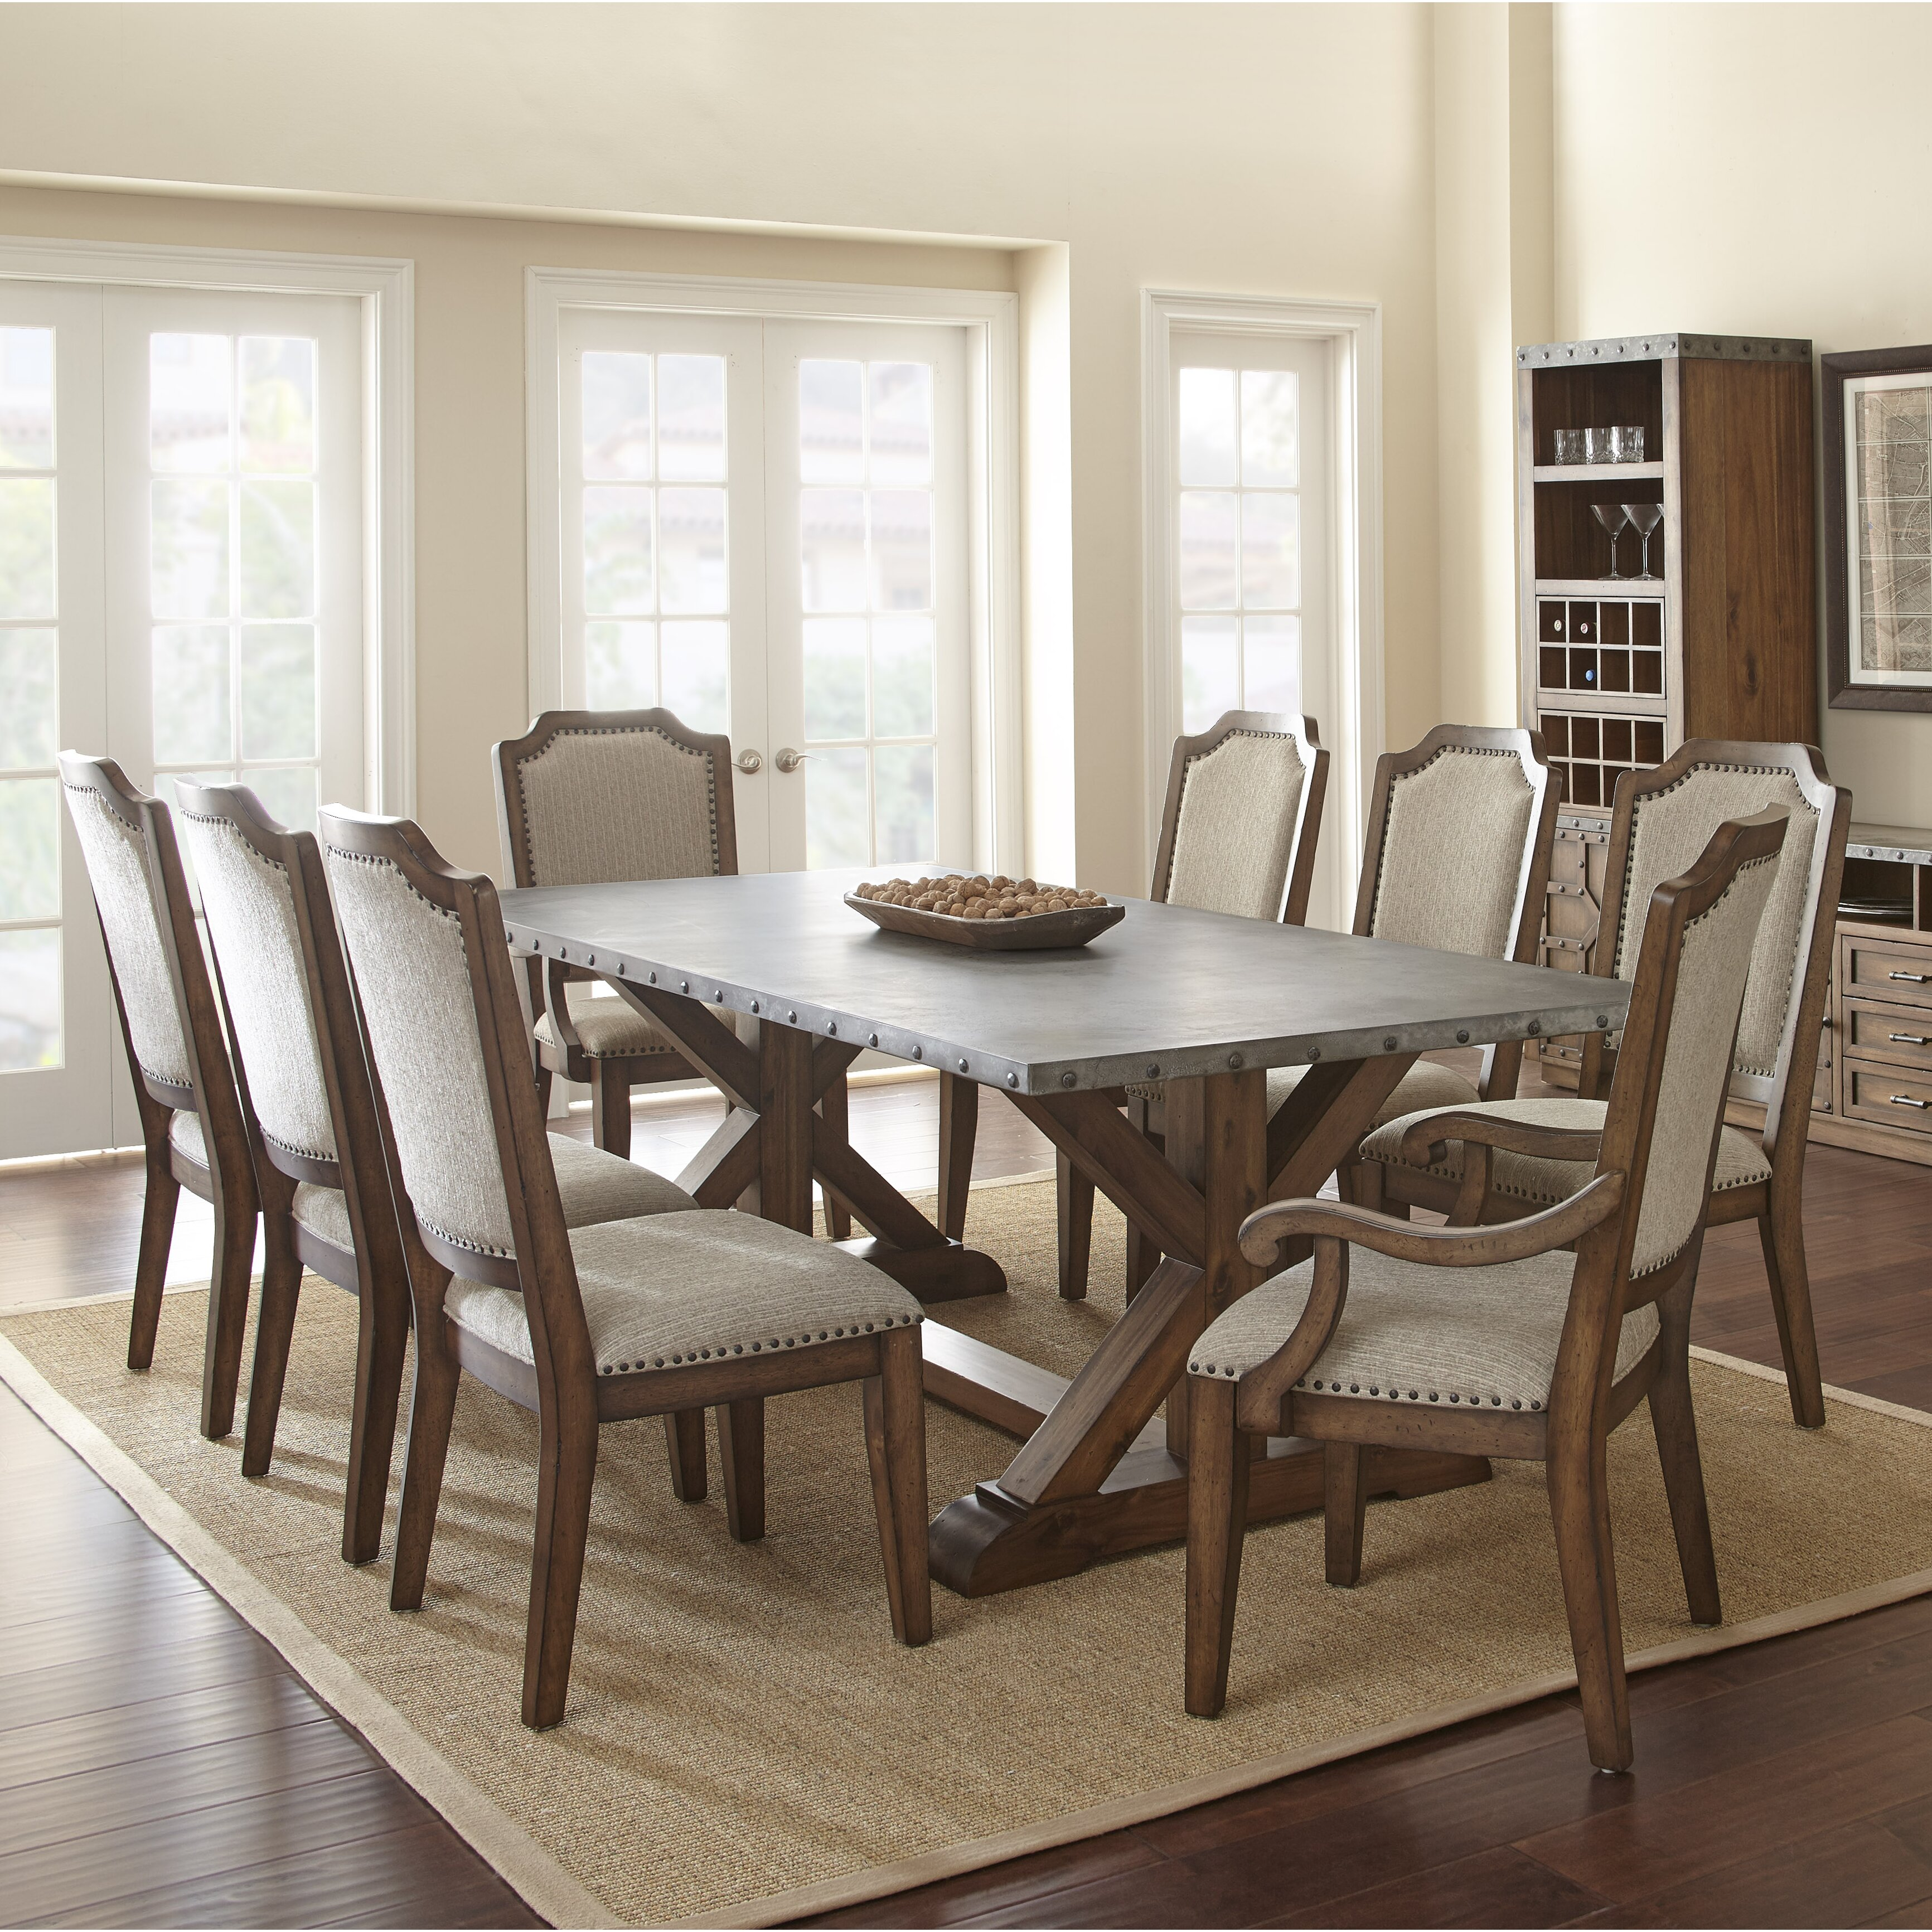 Trent austin design cushing 9 piece dining set reviews wayfair - Dining room sets austin tx ...